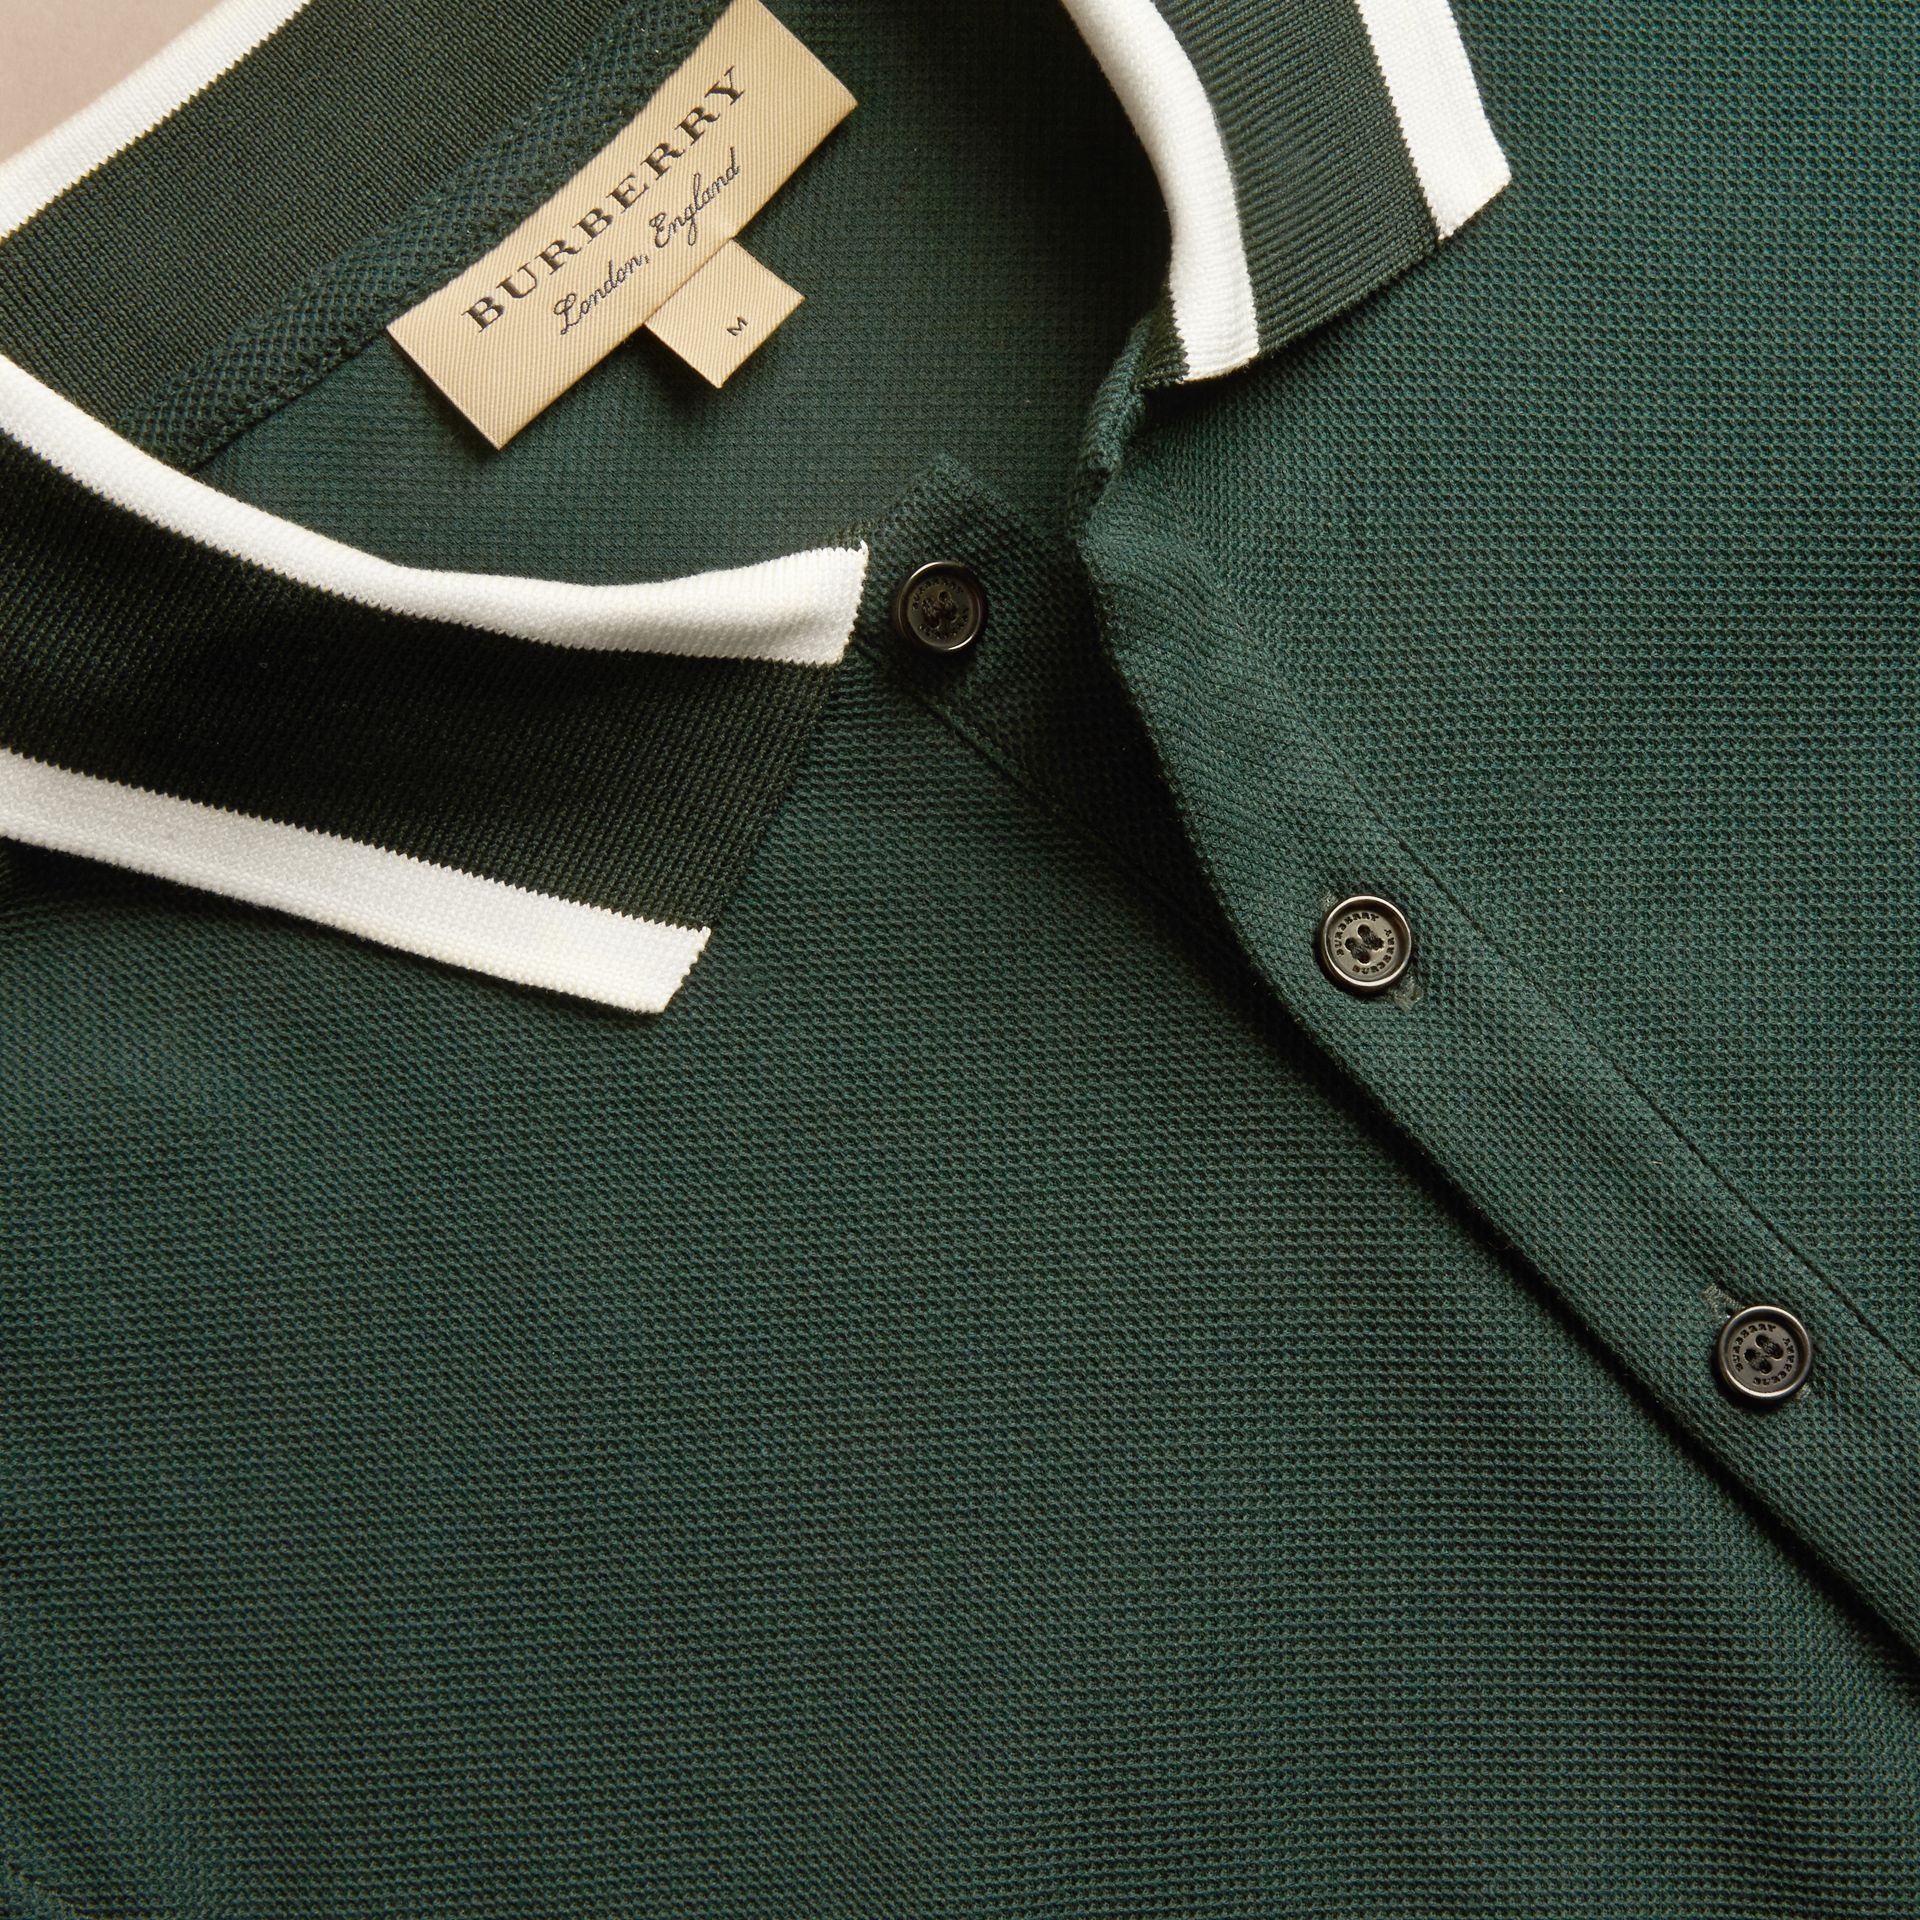 Racing green Striped Collar Cotton Piqué Polo Shirt Racing Green - gallery image 2